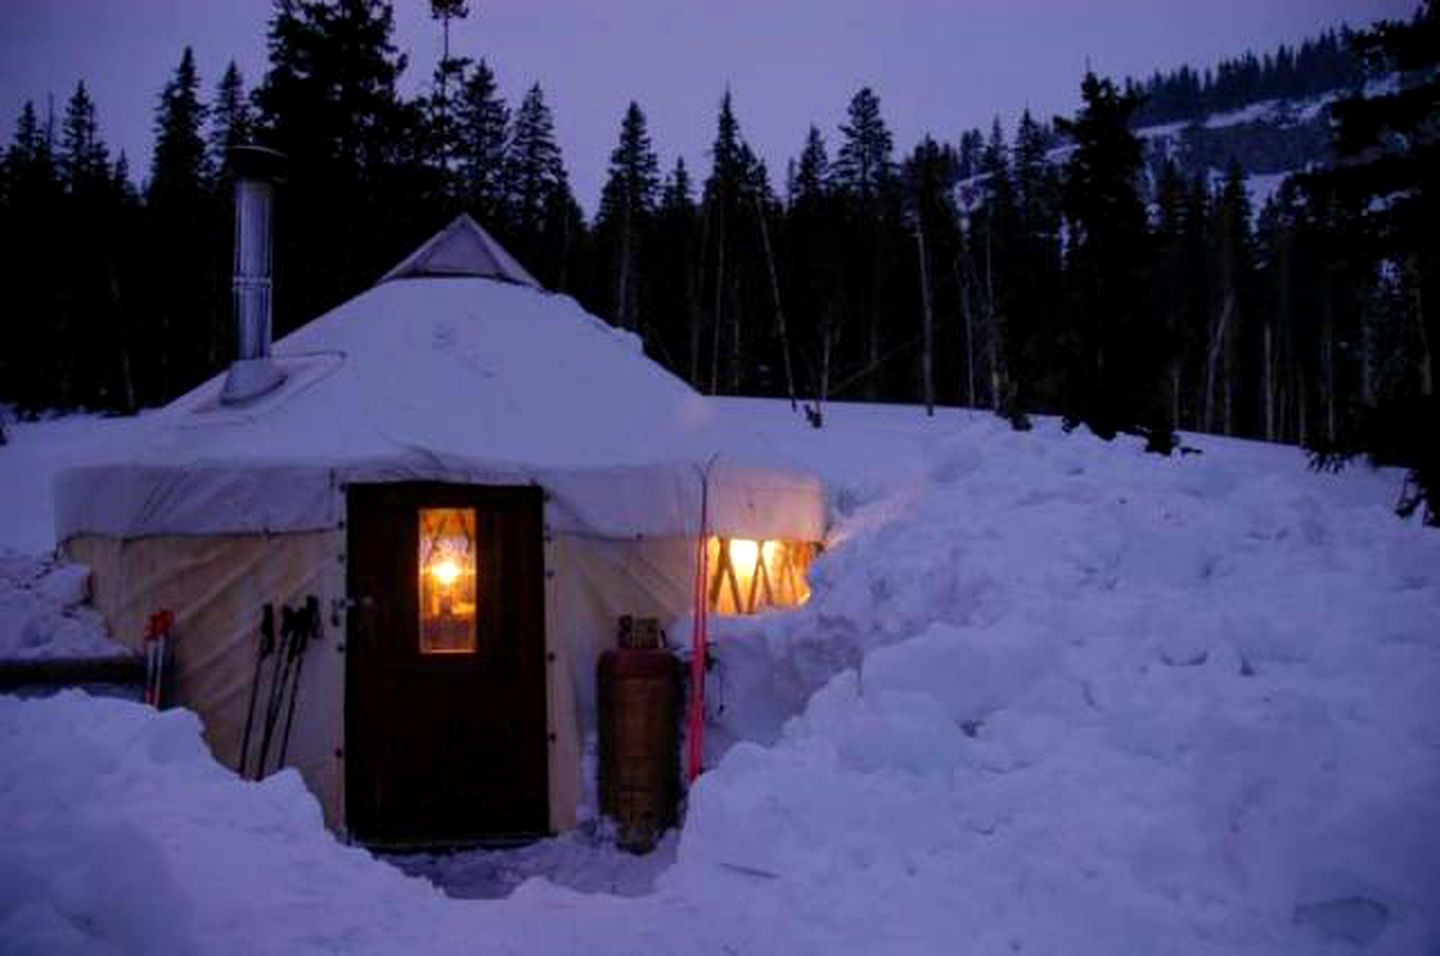 Yurts (Taos, New Mexico, United States)